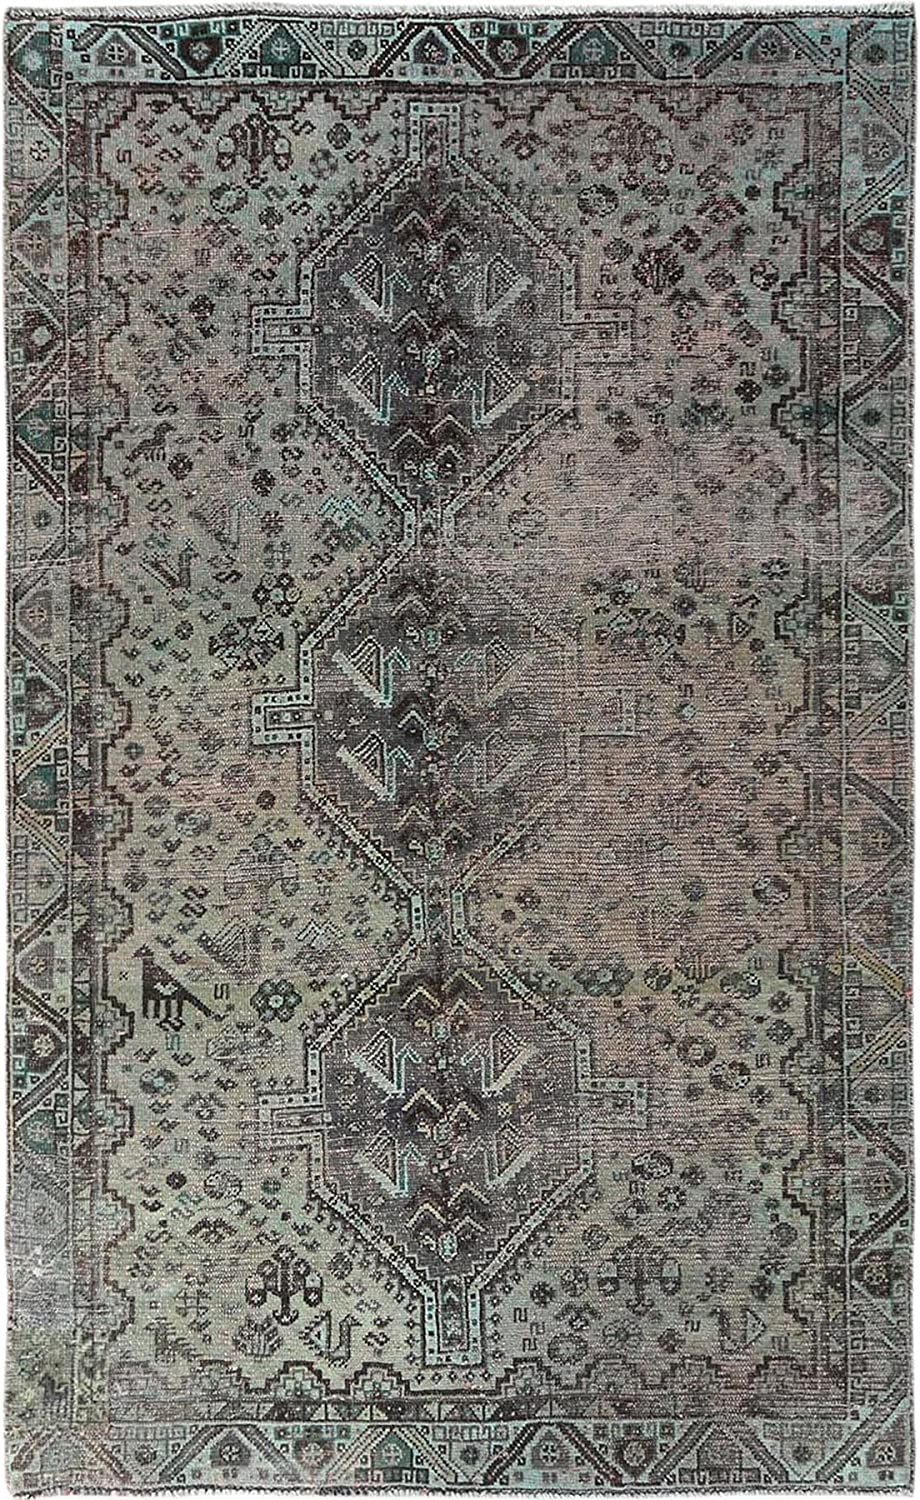 Shahbanu Rugs Semi Antique Spring new work one after another Gray Persian Virginia Beach Mall Worn Down Shiraz Kn Hand